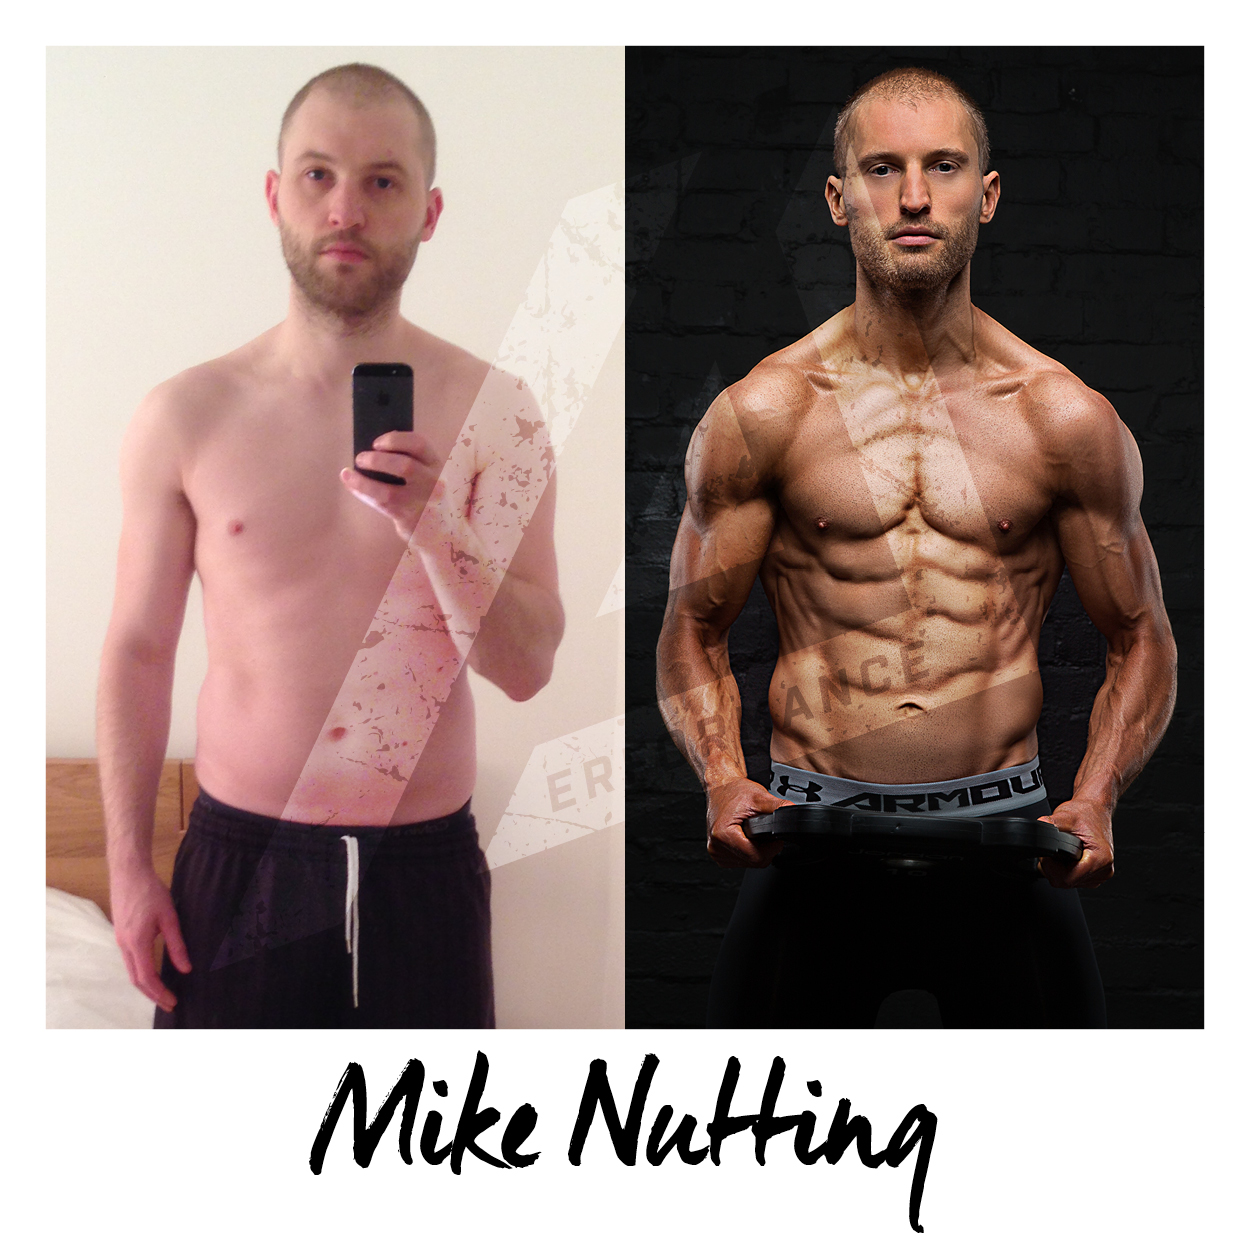 Mike tells his story of how he fell into loving fitness and overcame the initial fear he had of entering the gym in the first place, which I think many people reading will be able to relate to. Here is his story...